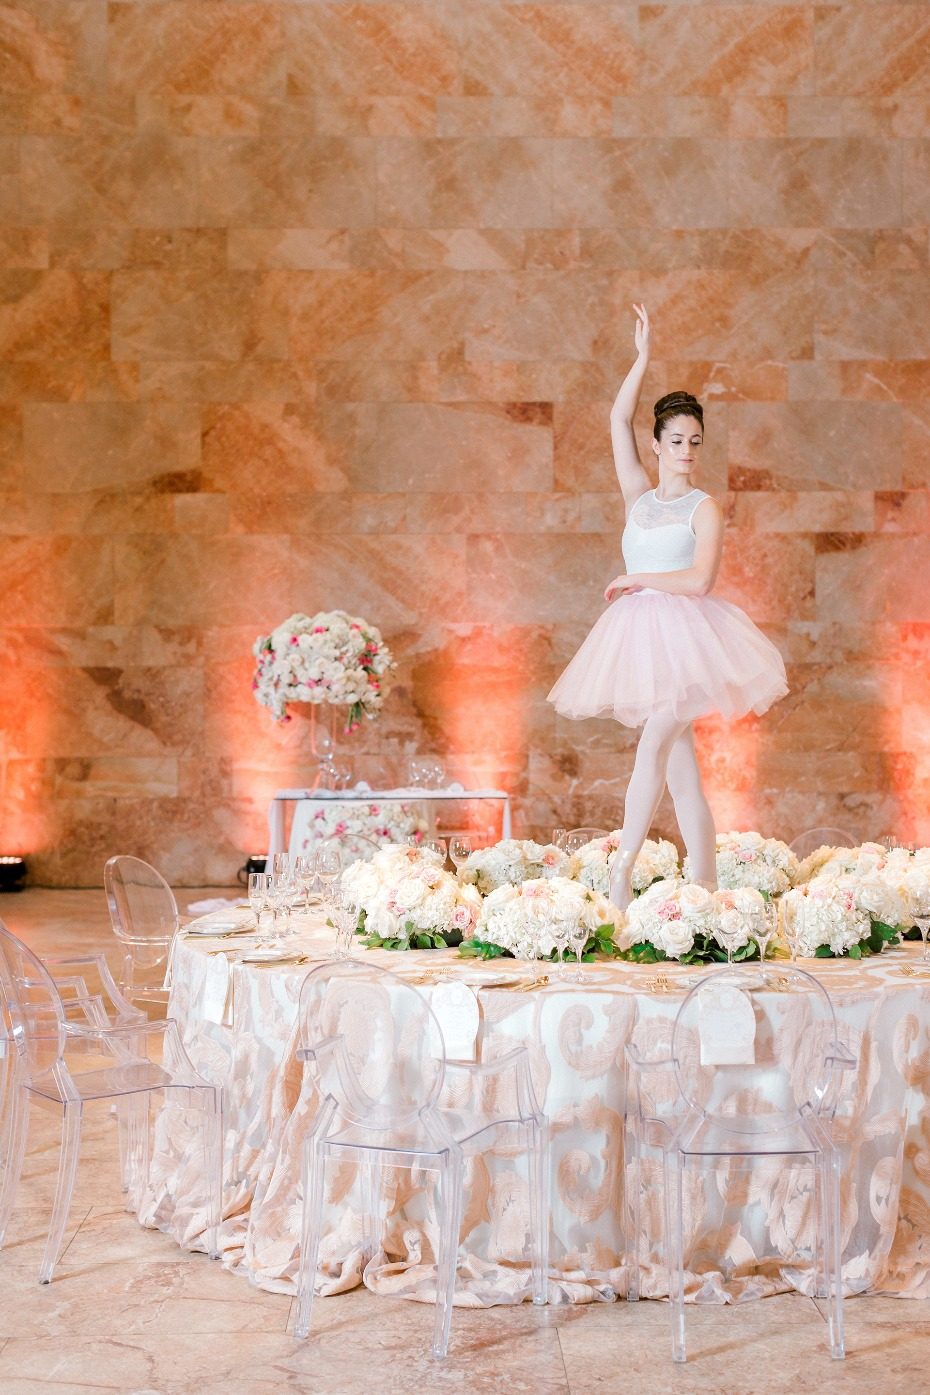 Royal ballerina wedding ideas